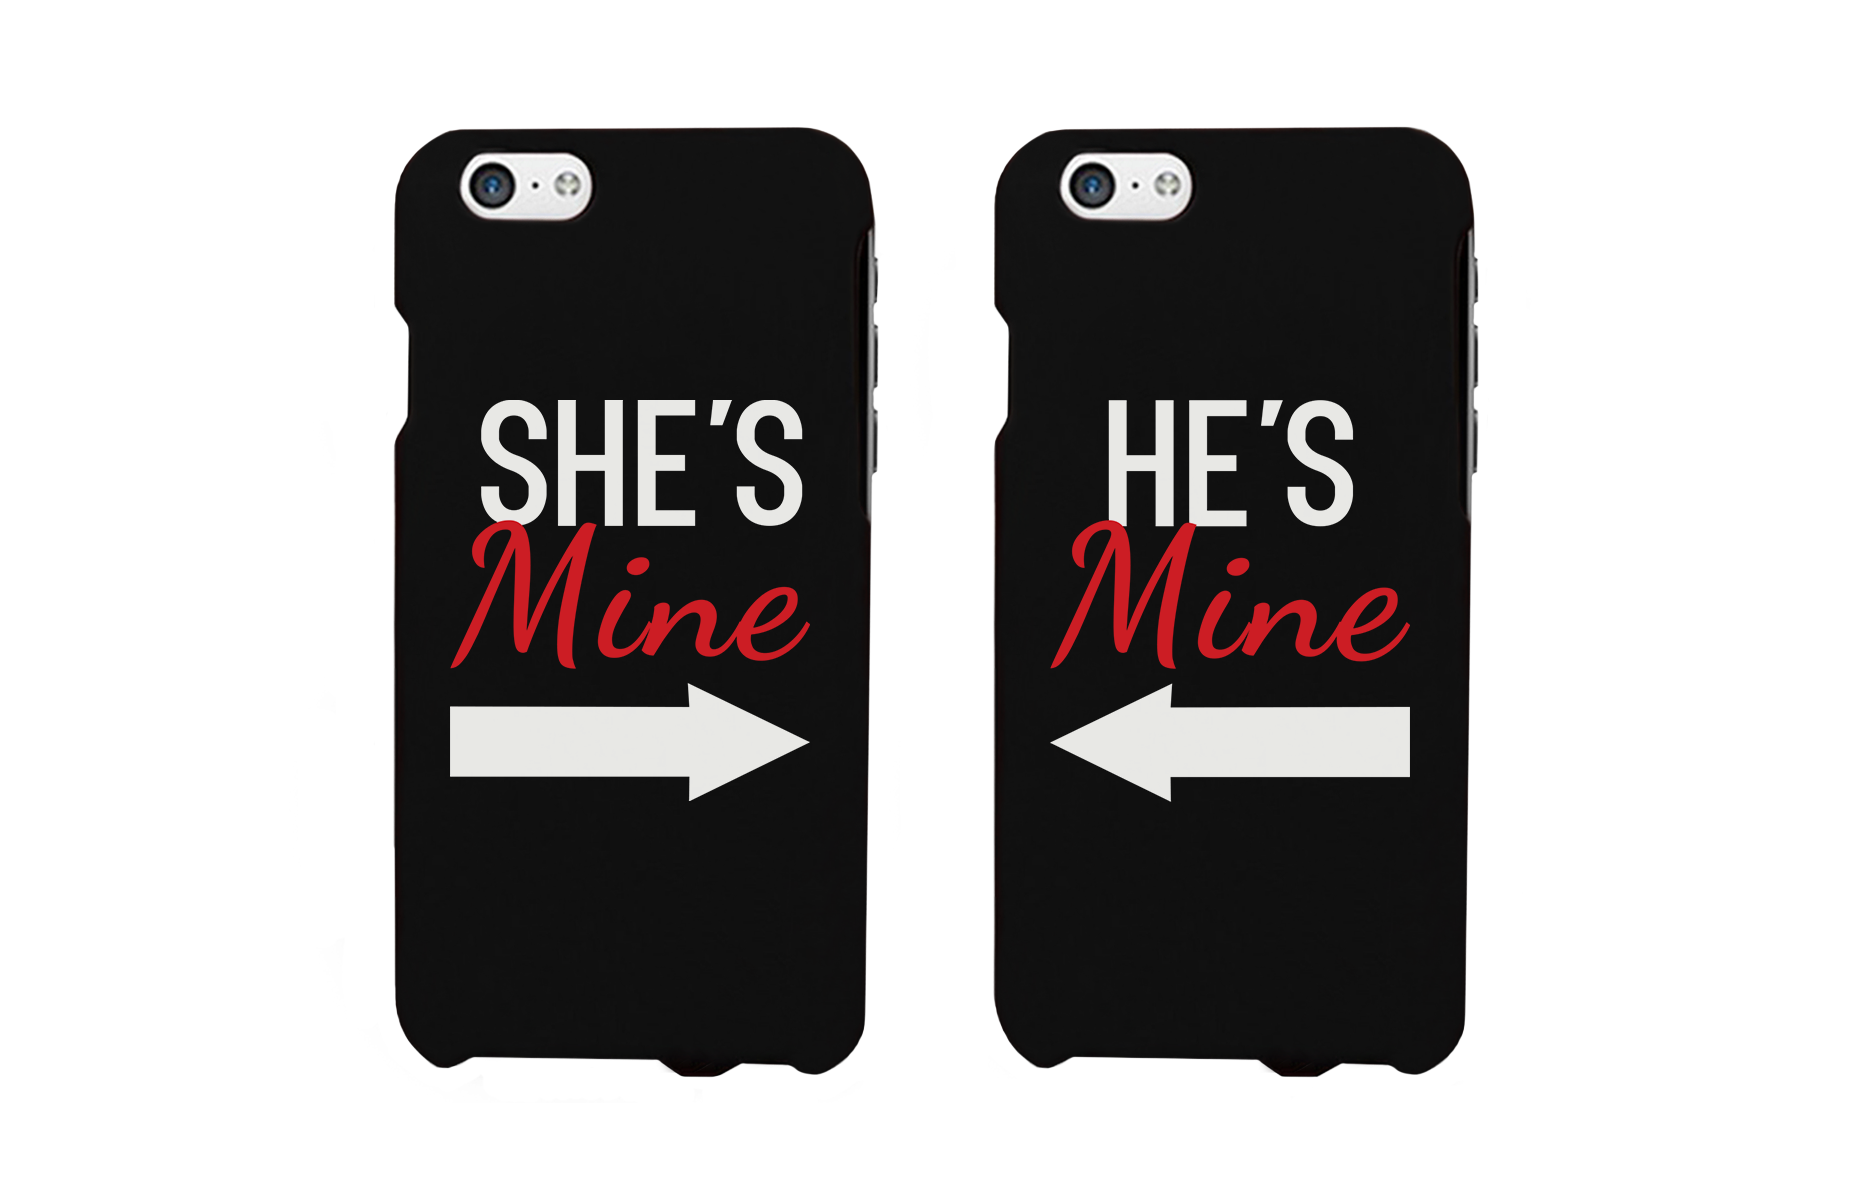 365_0005_MI6_MI6_he-is-mine-she-is-mine-arrow-couple-matching-phone-casespng_zps9a6febce